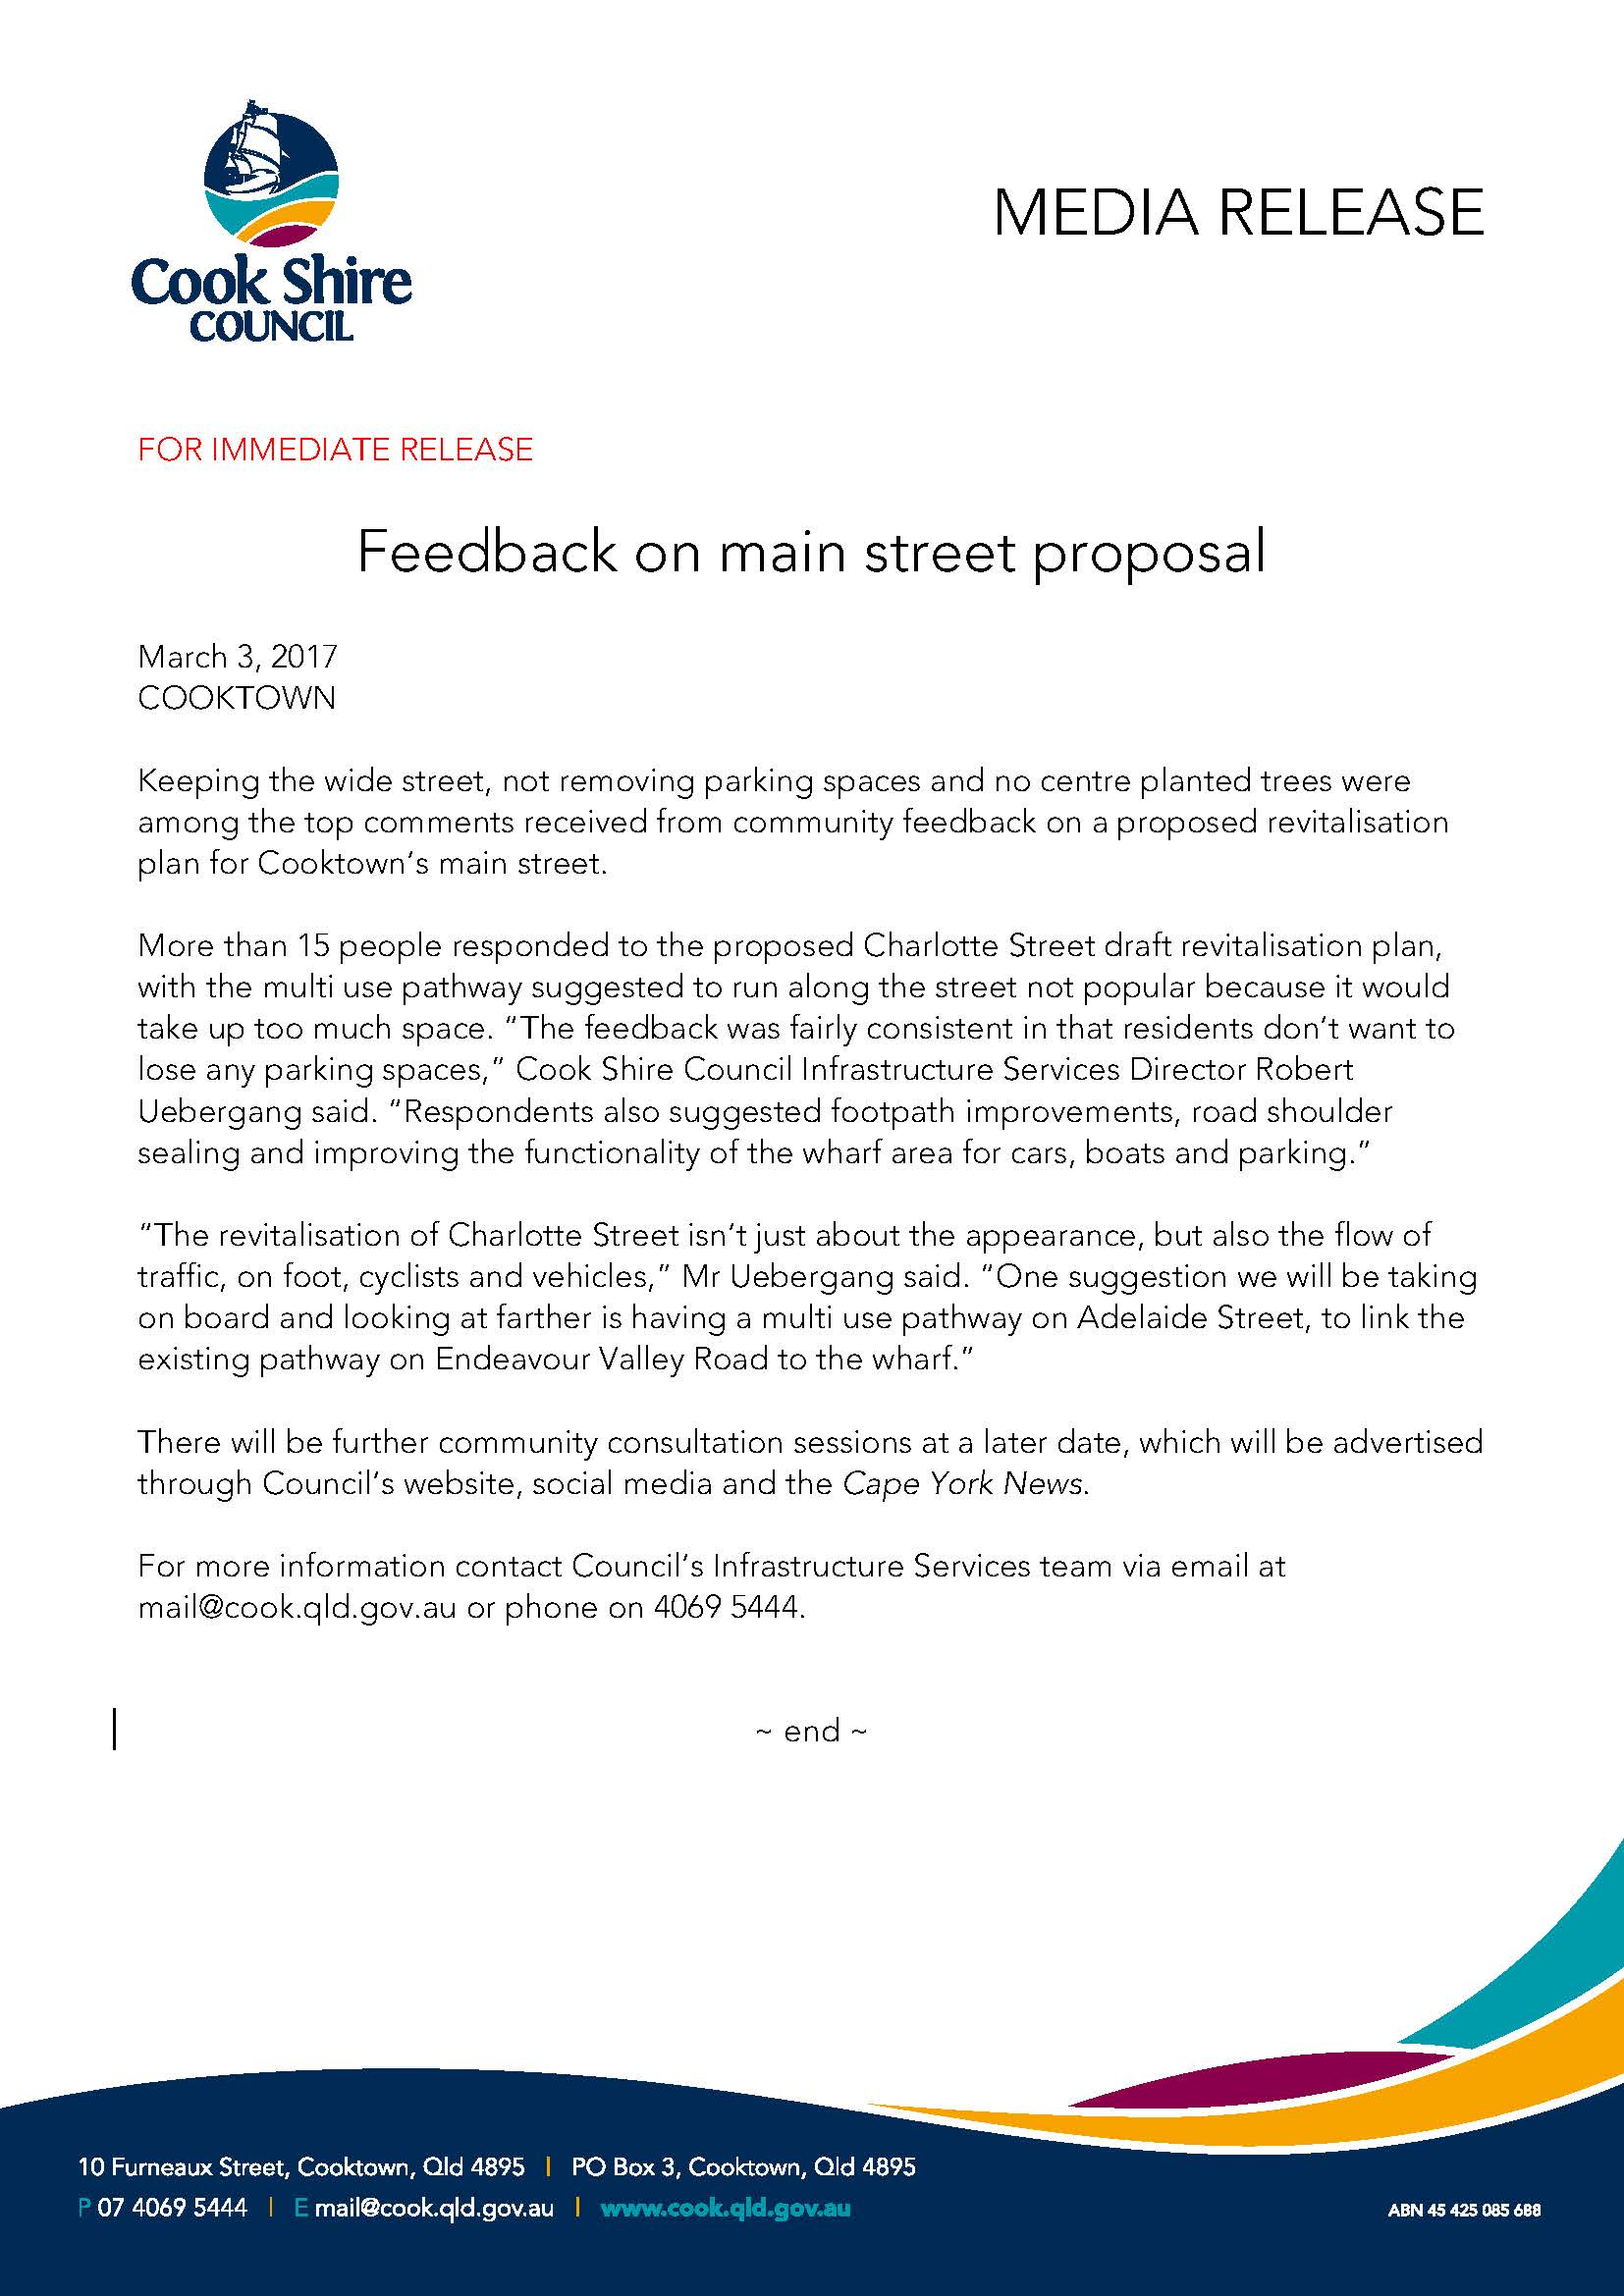 Feedback on main street proposal